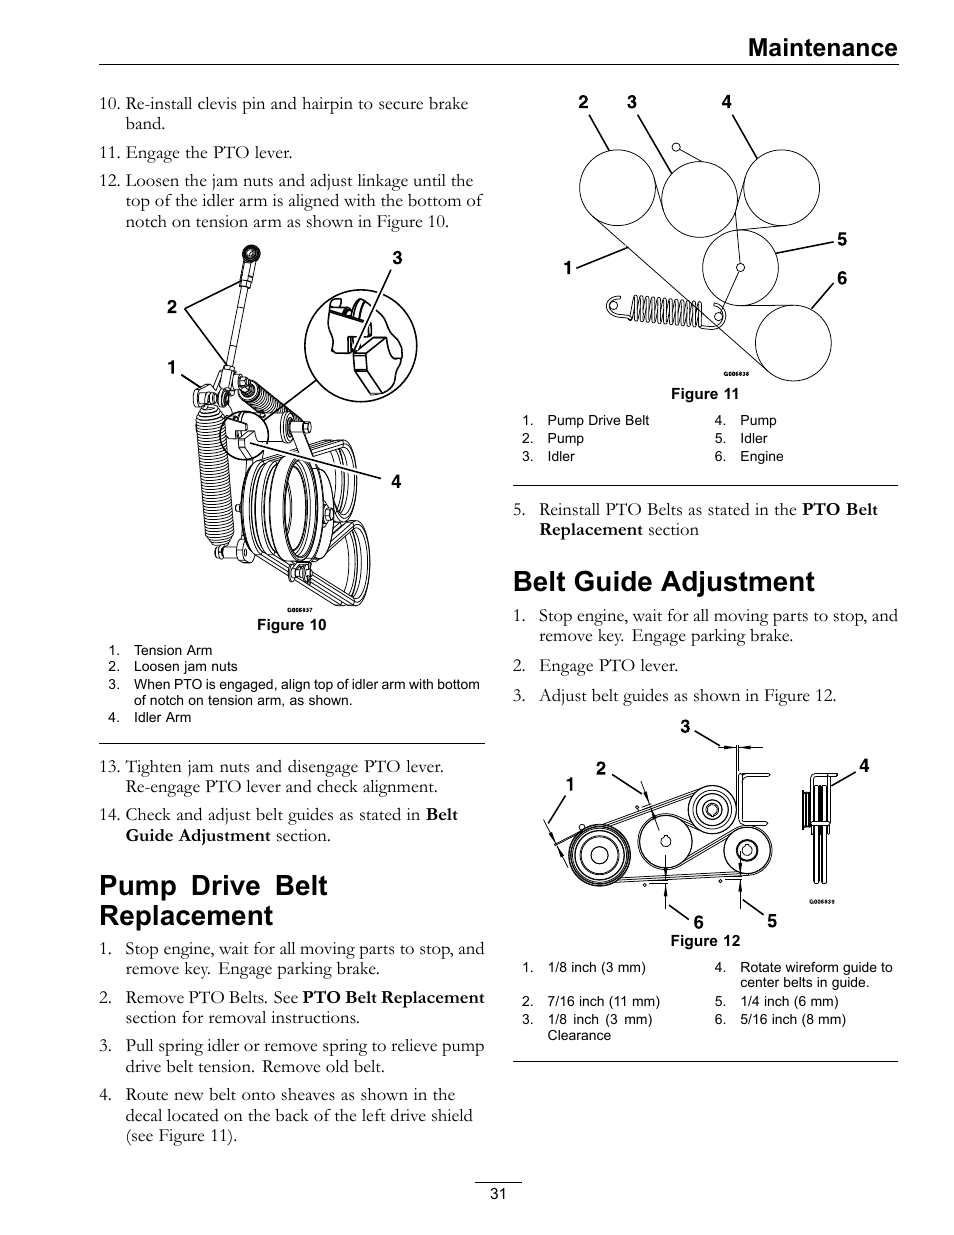 medium resolution of pump drive belt replacement belt guide adjustment maintenance exmark navigator 0 user manual page 31 48